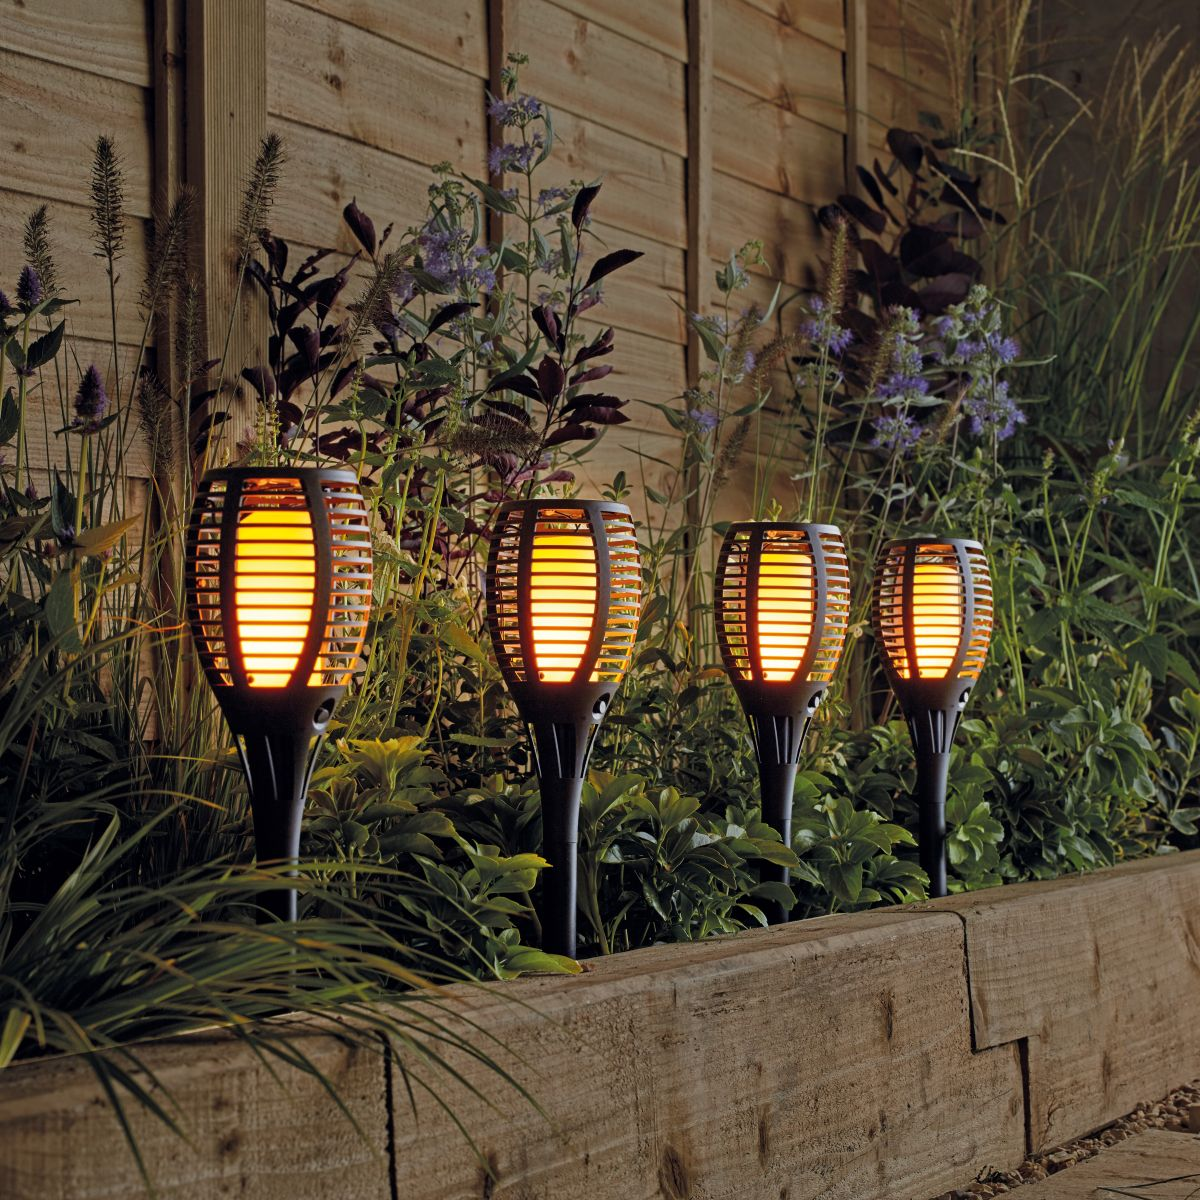 These solar lights will illuminate your garden space on many a balmy evening